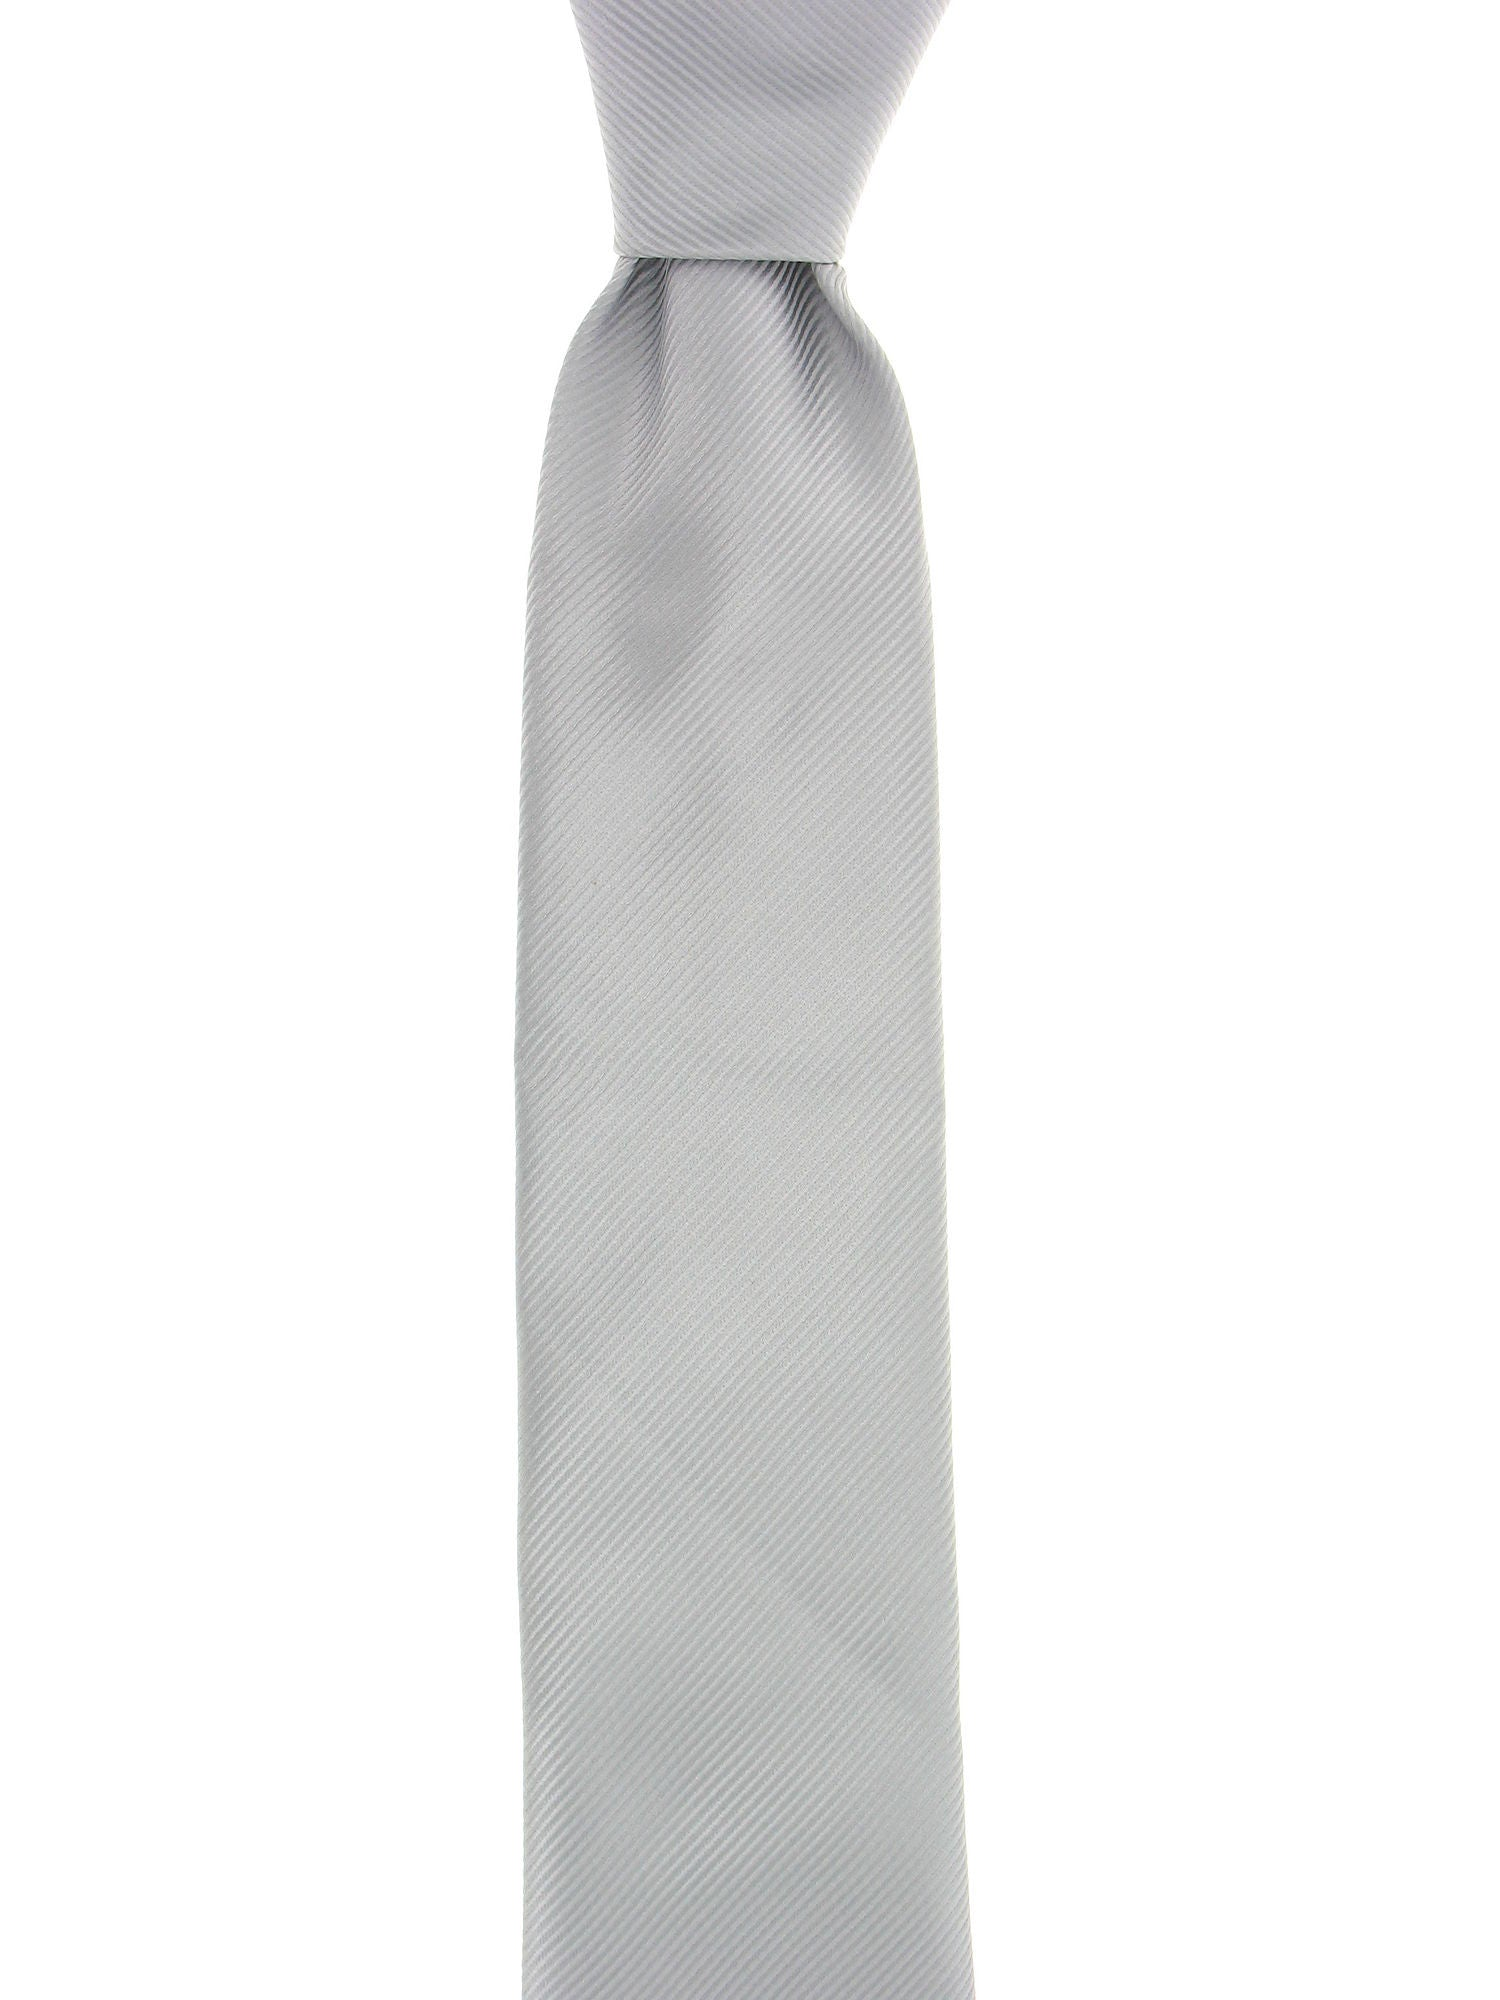 Geoffrey Beene Mens Silver Striped Tie